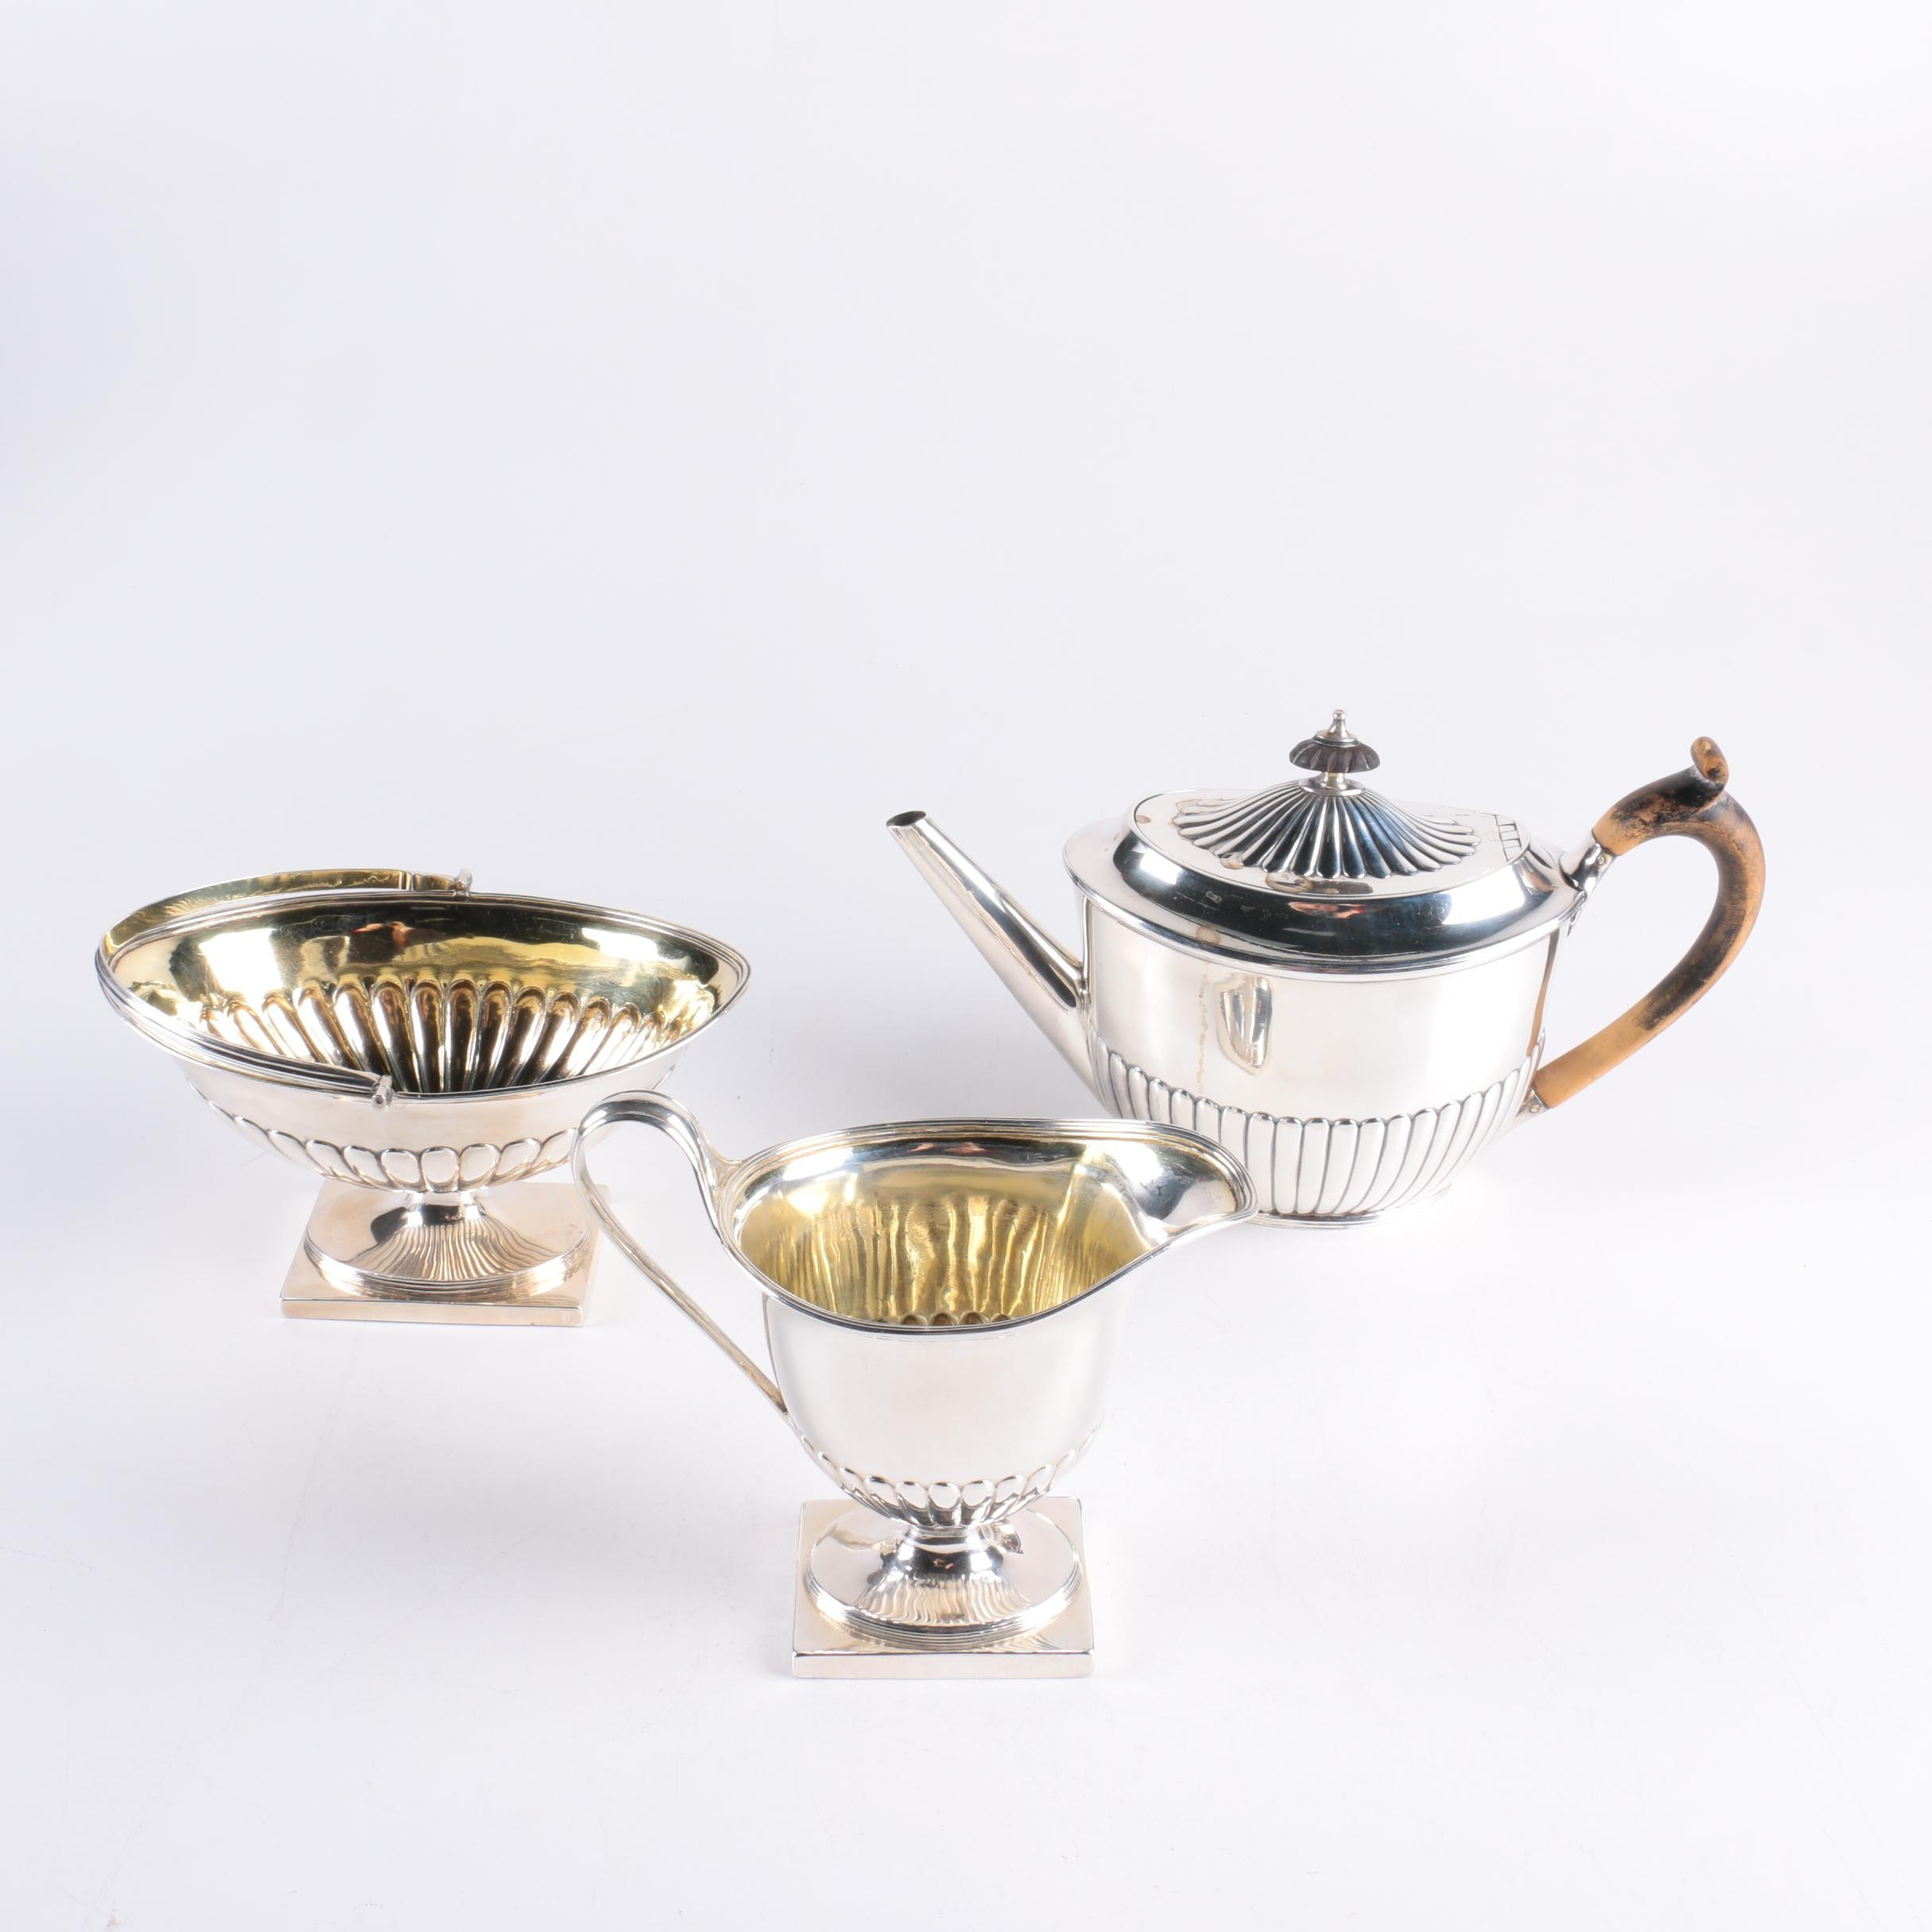 Georgian Robert Sharp and William Fountain London Sterling Silver Tea Service